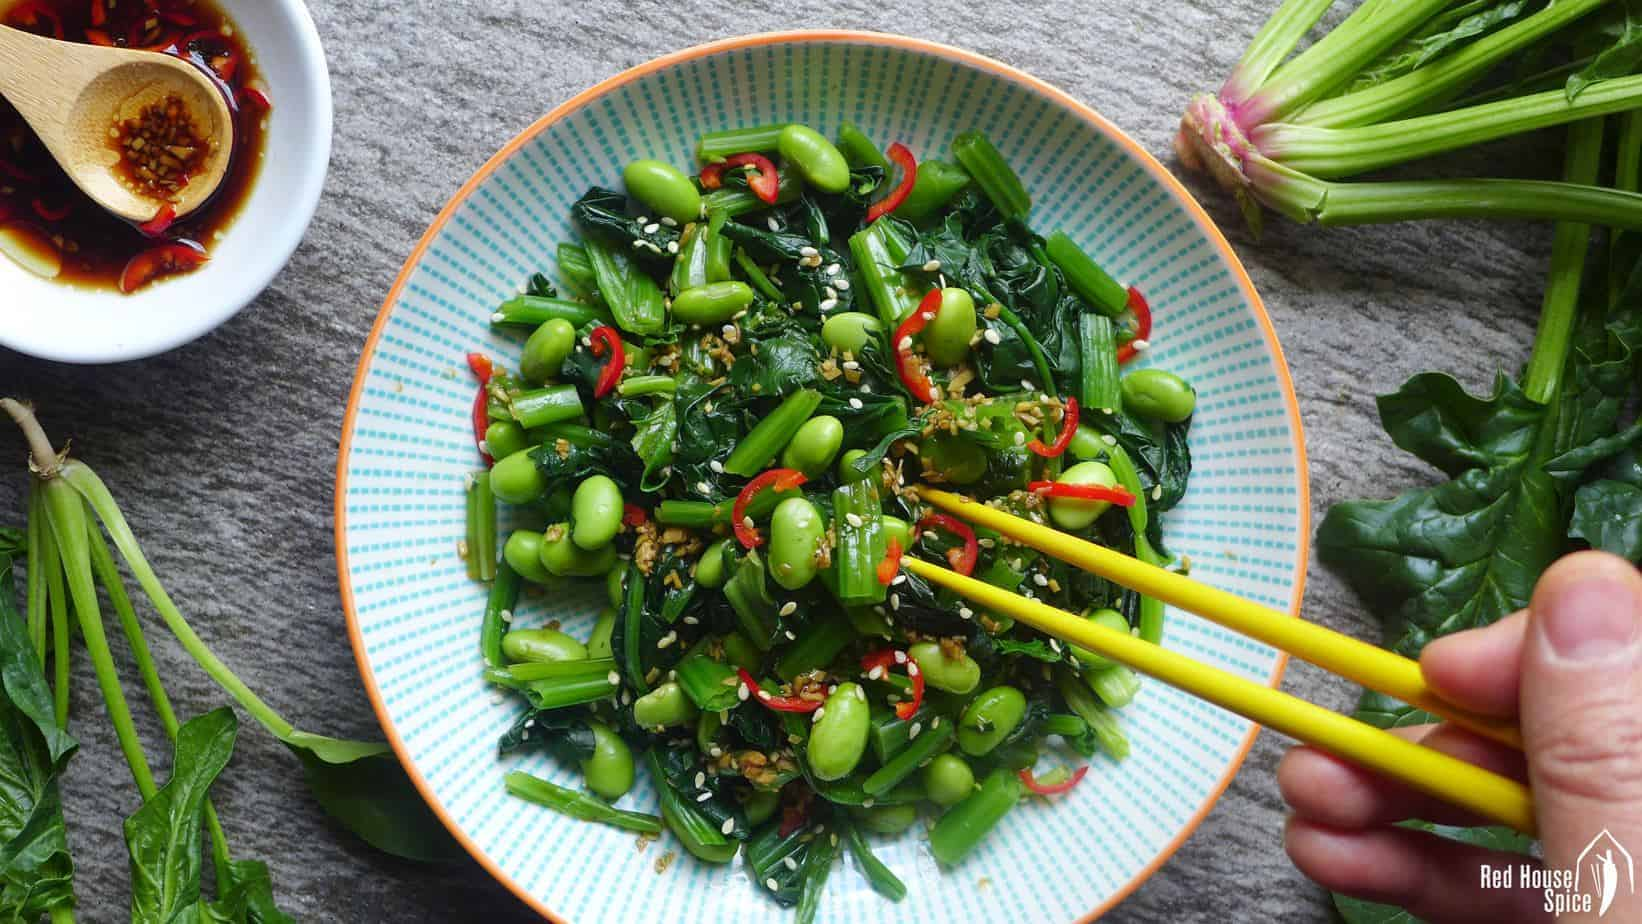 Spinach and soybean salad with ginger dressing (姜汁菠菜毛豆)